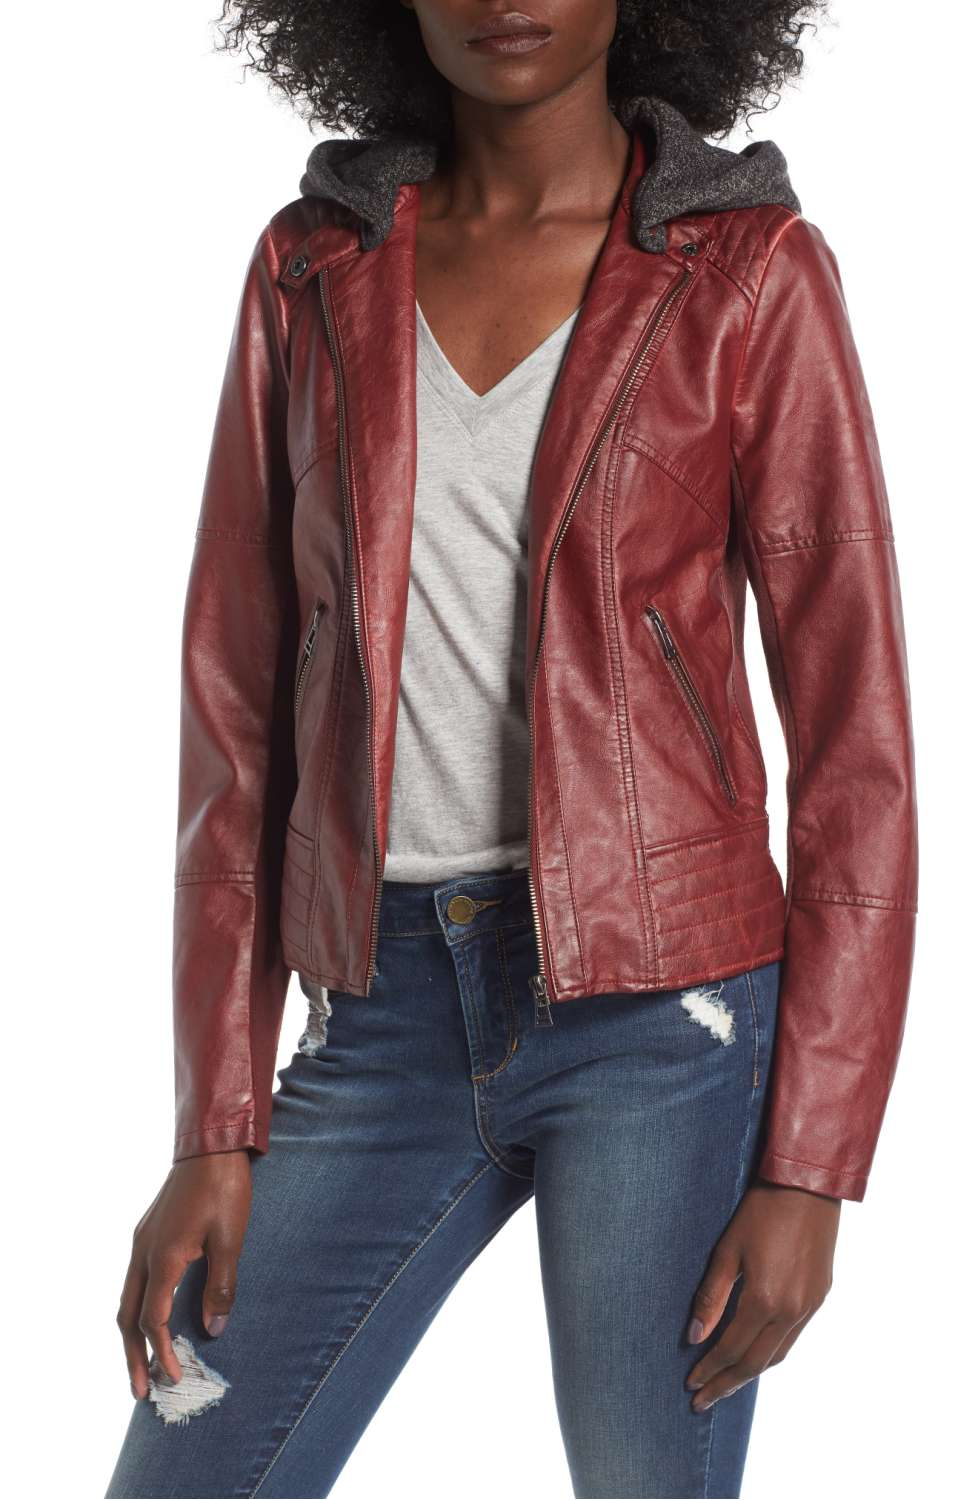 SEBBY Faux Leather Jacket with Detachable Jersey Hood - Was $109 Now $69.90